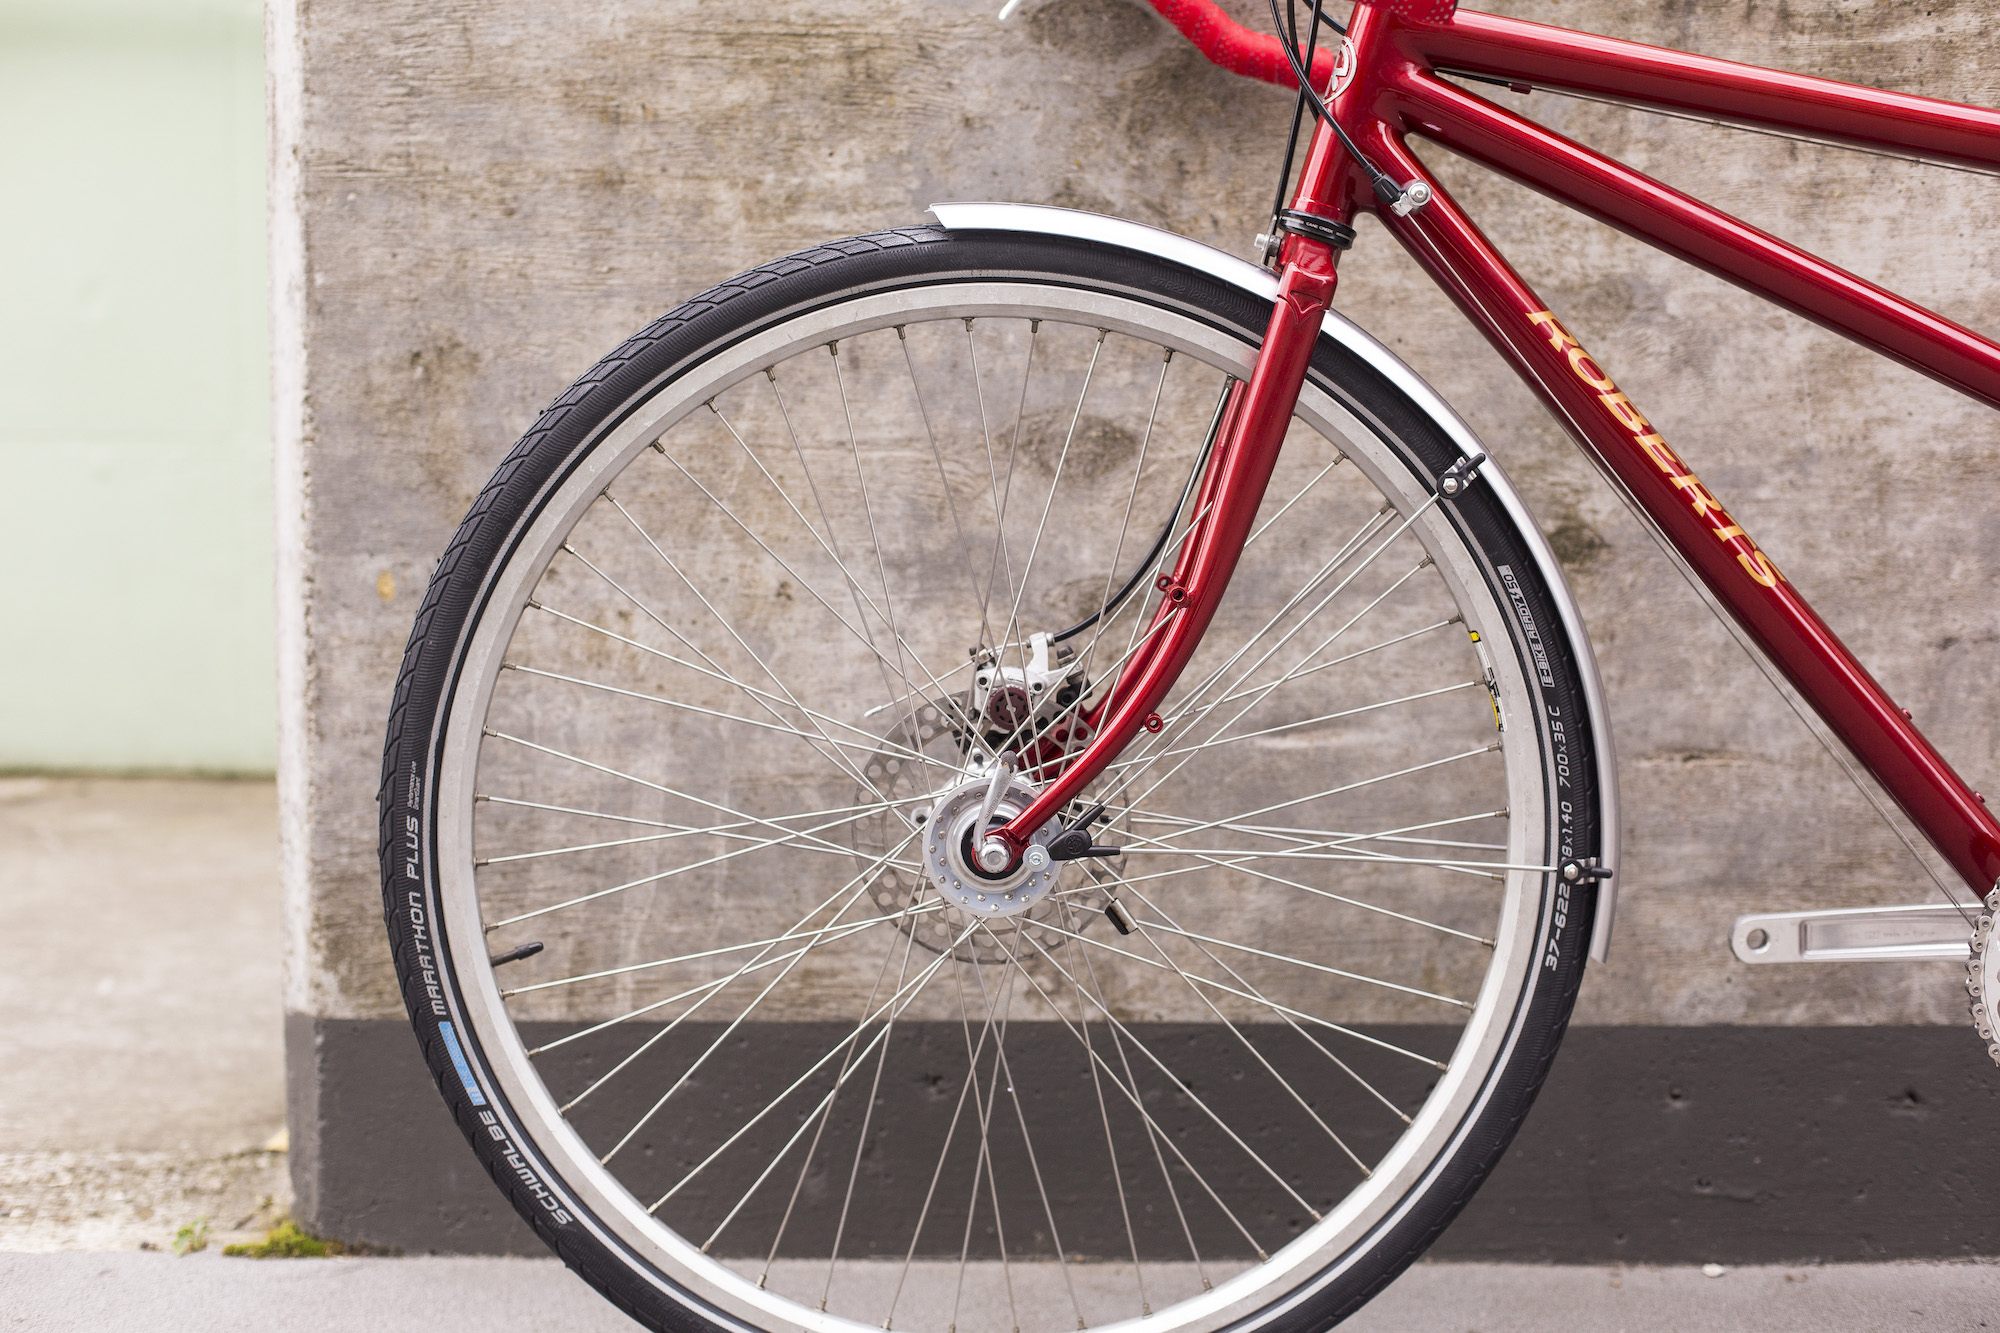 seabass-cycles-bikes-parts-instore-2-april-2019-roberts-tandem-candy-red-4352.jpg